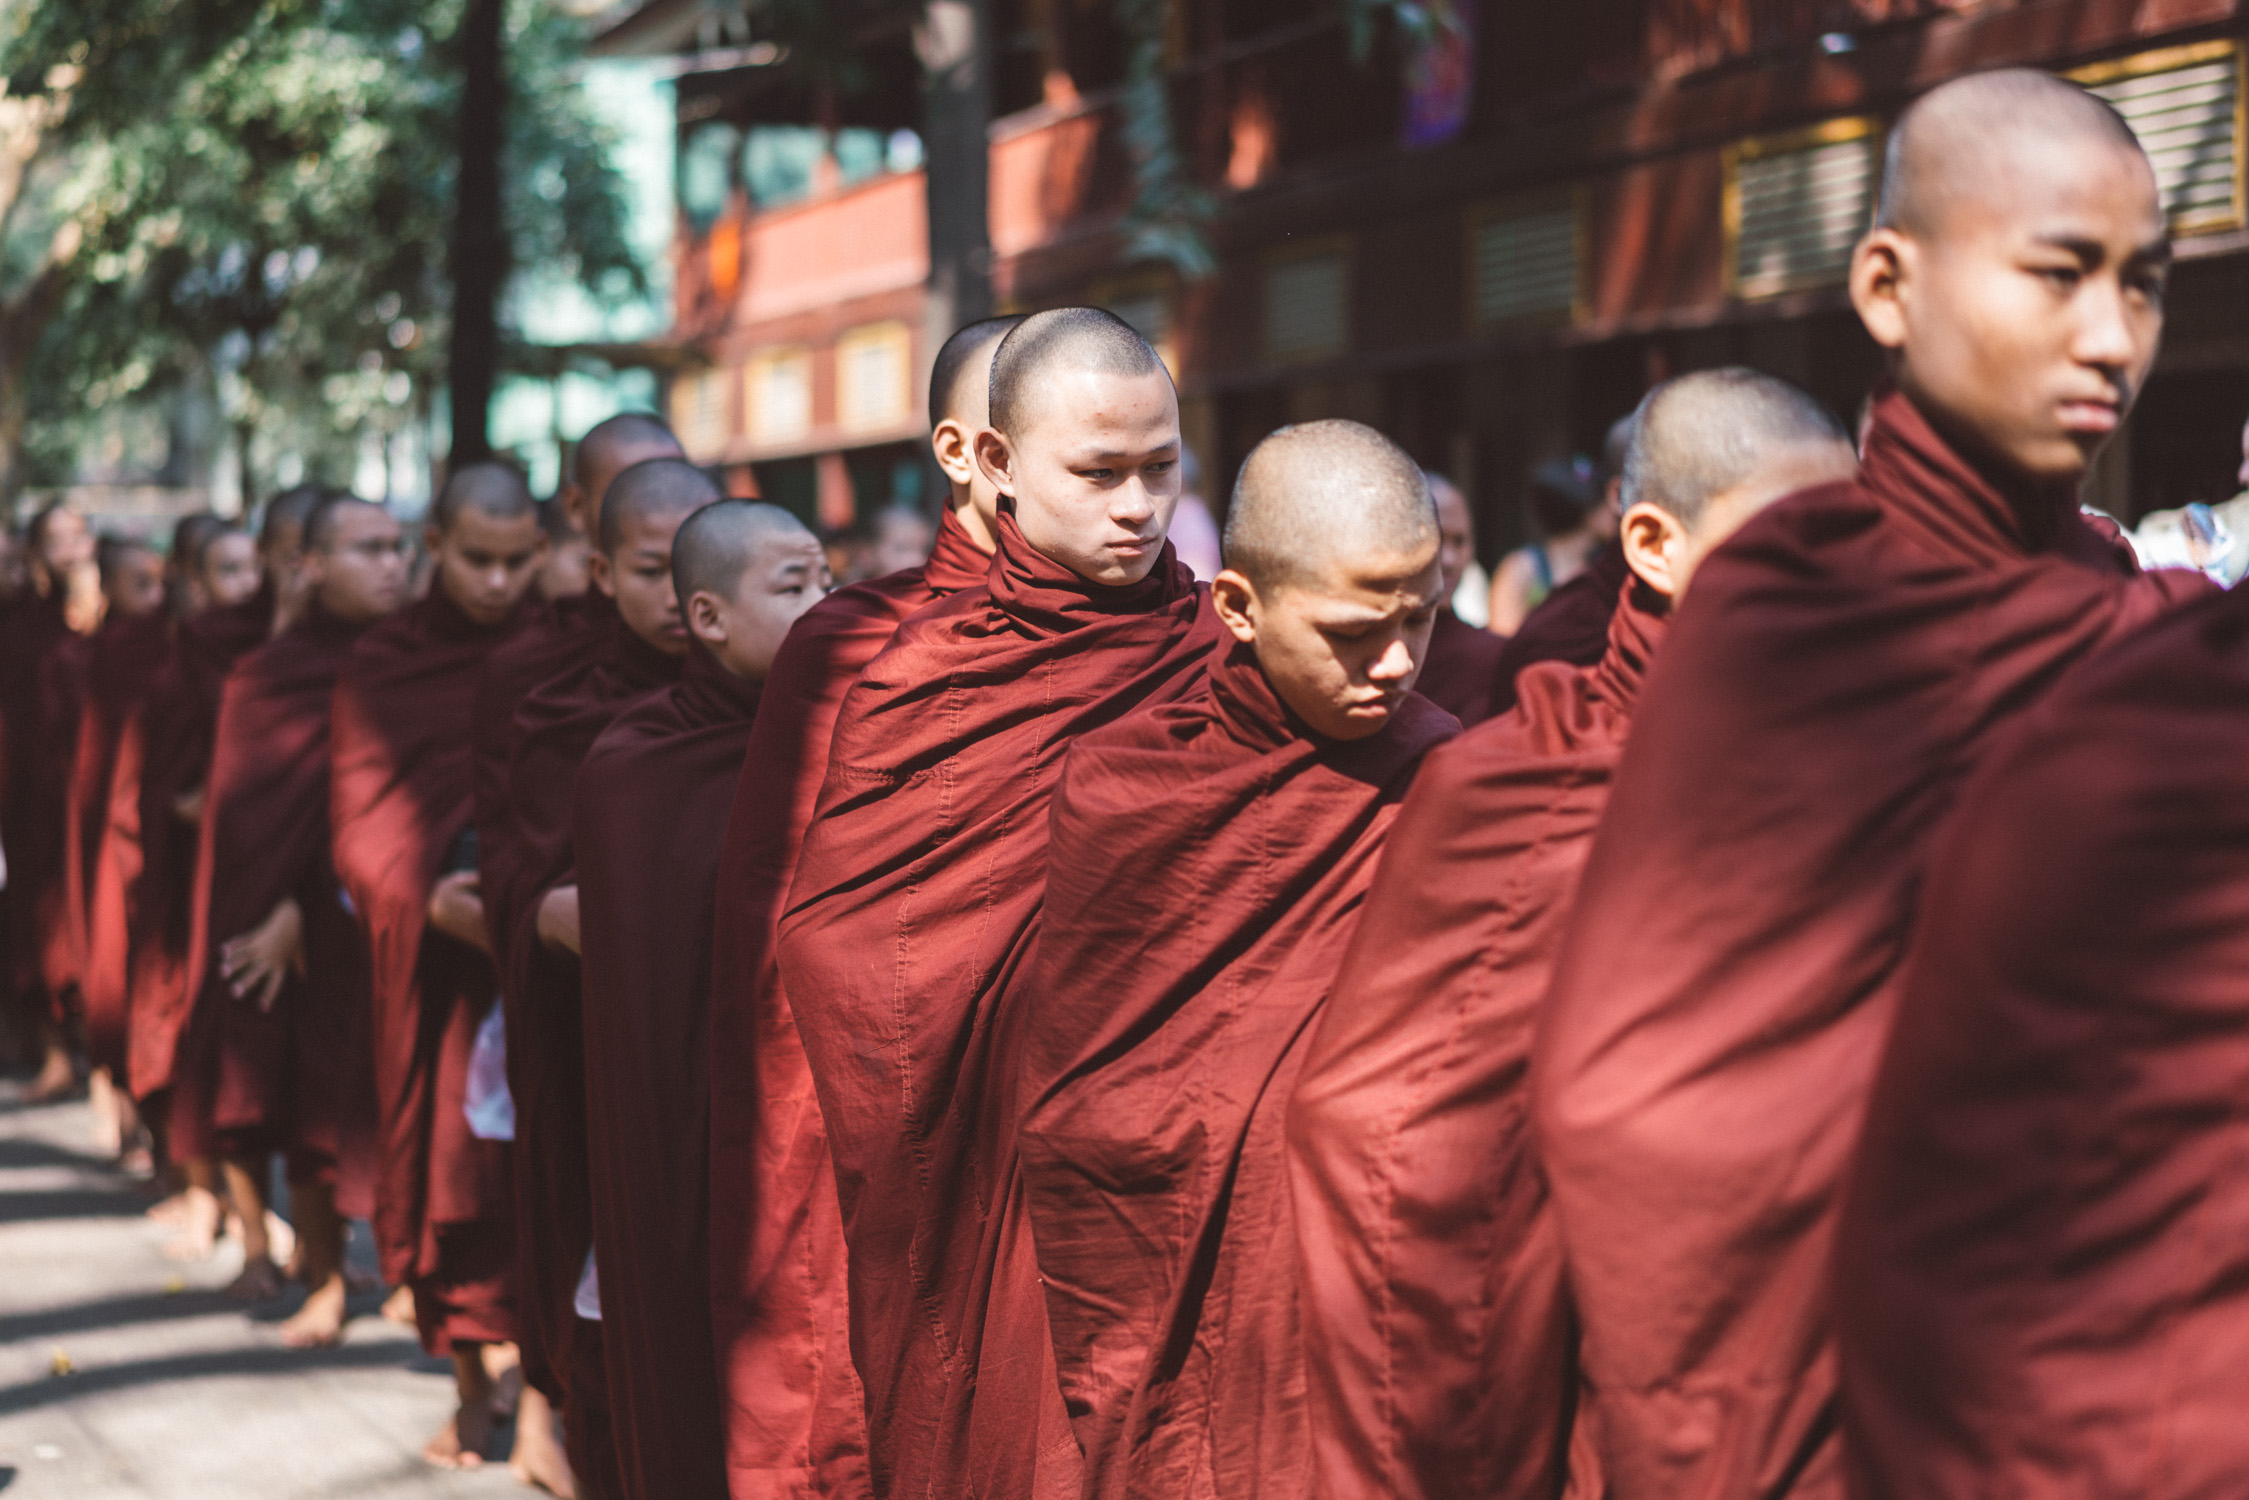 monks queue for lunch [David Tan]